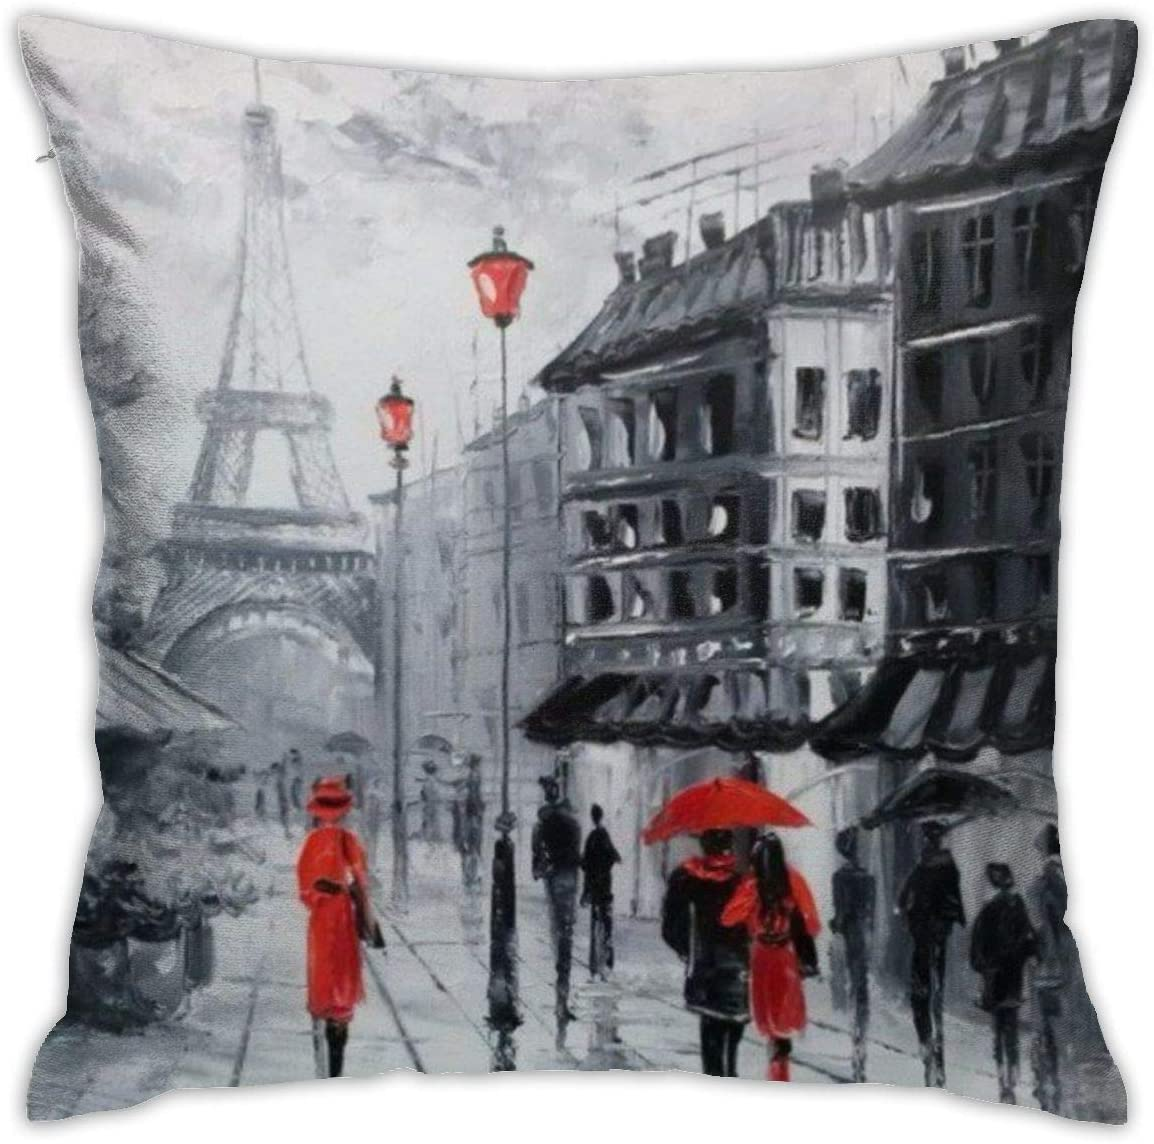 Antvinoler Paris Pillows Case Soft Throw Pillow Double-Sided Digital Printing Couch Pillowcase Square 45cm45cm